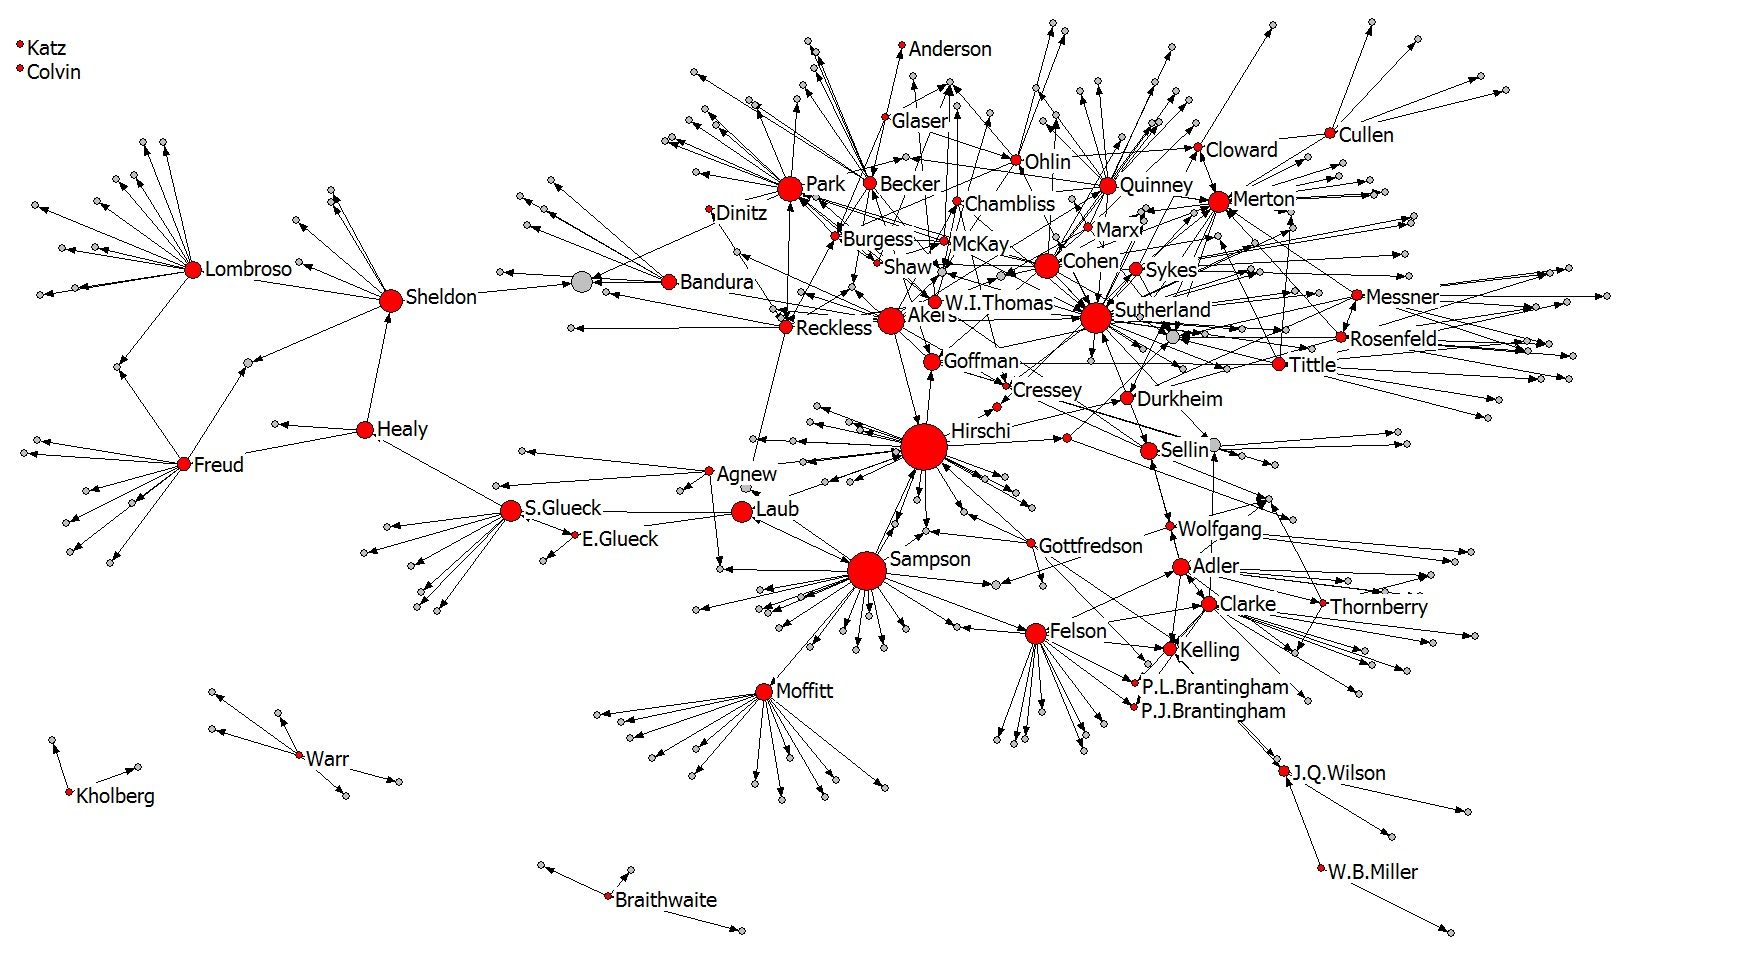 Network of Criminal Thought Betweenness Centrality